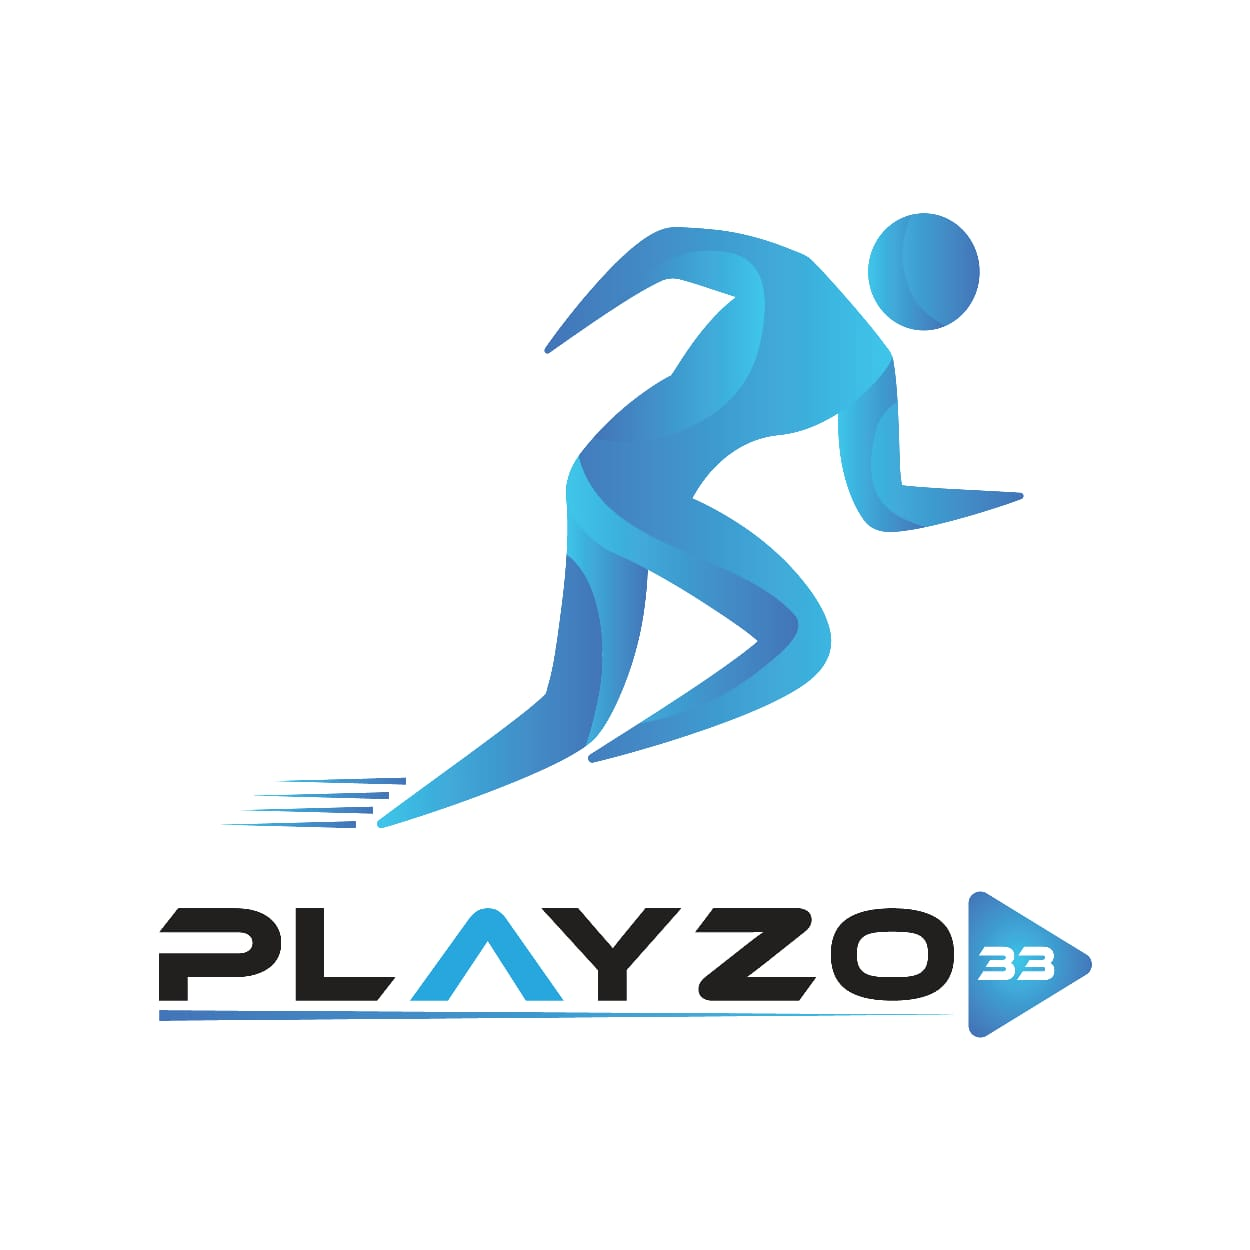 Playzo uses Omnify Soccer Scheduling Software